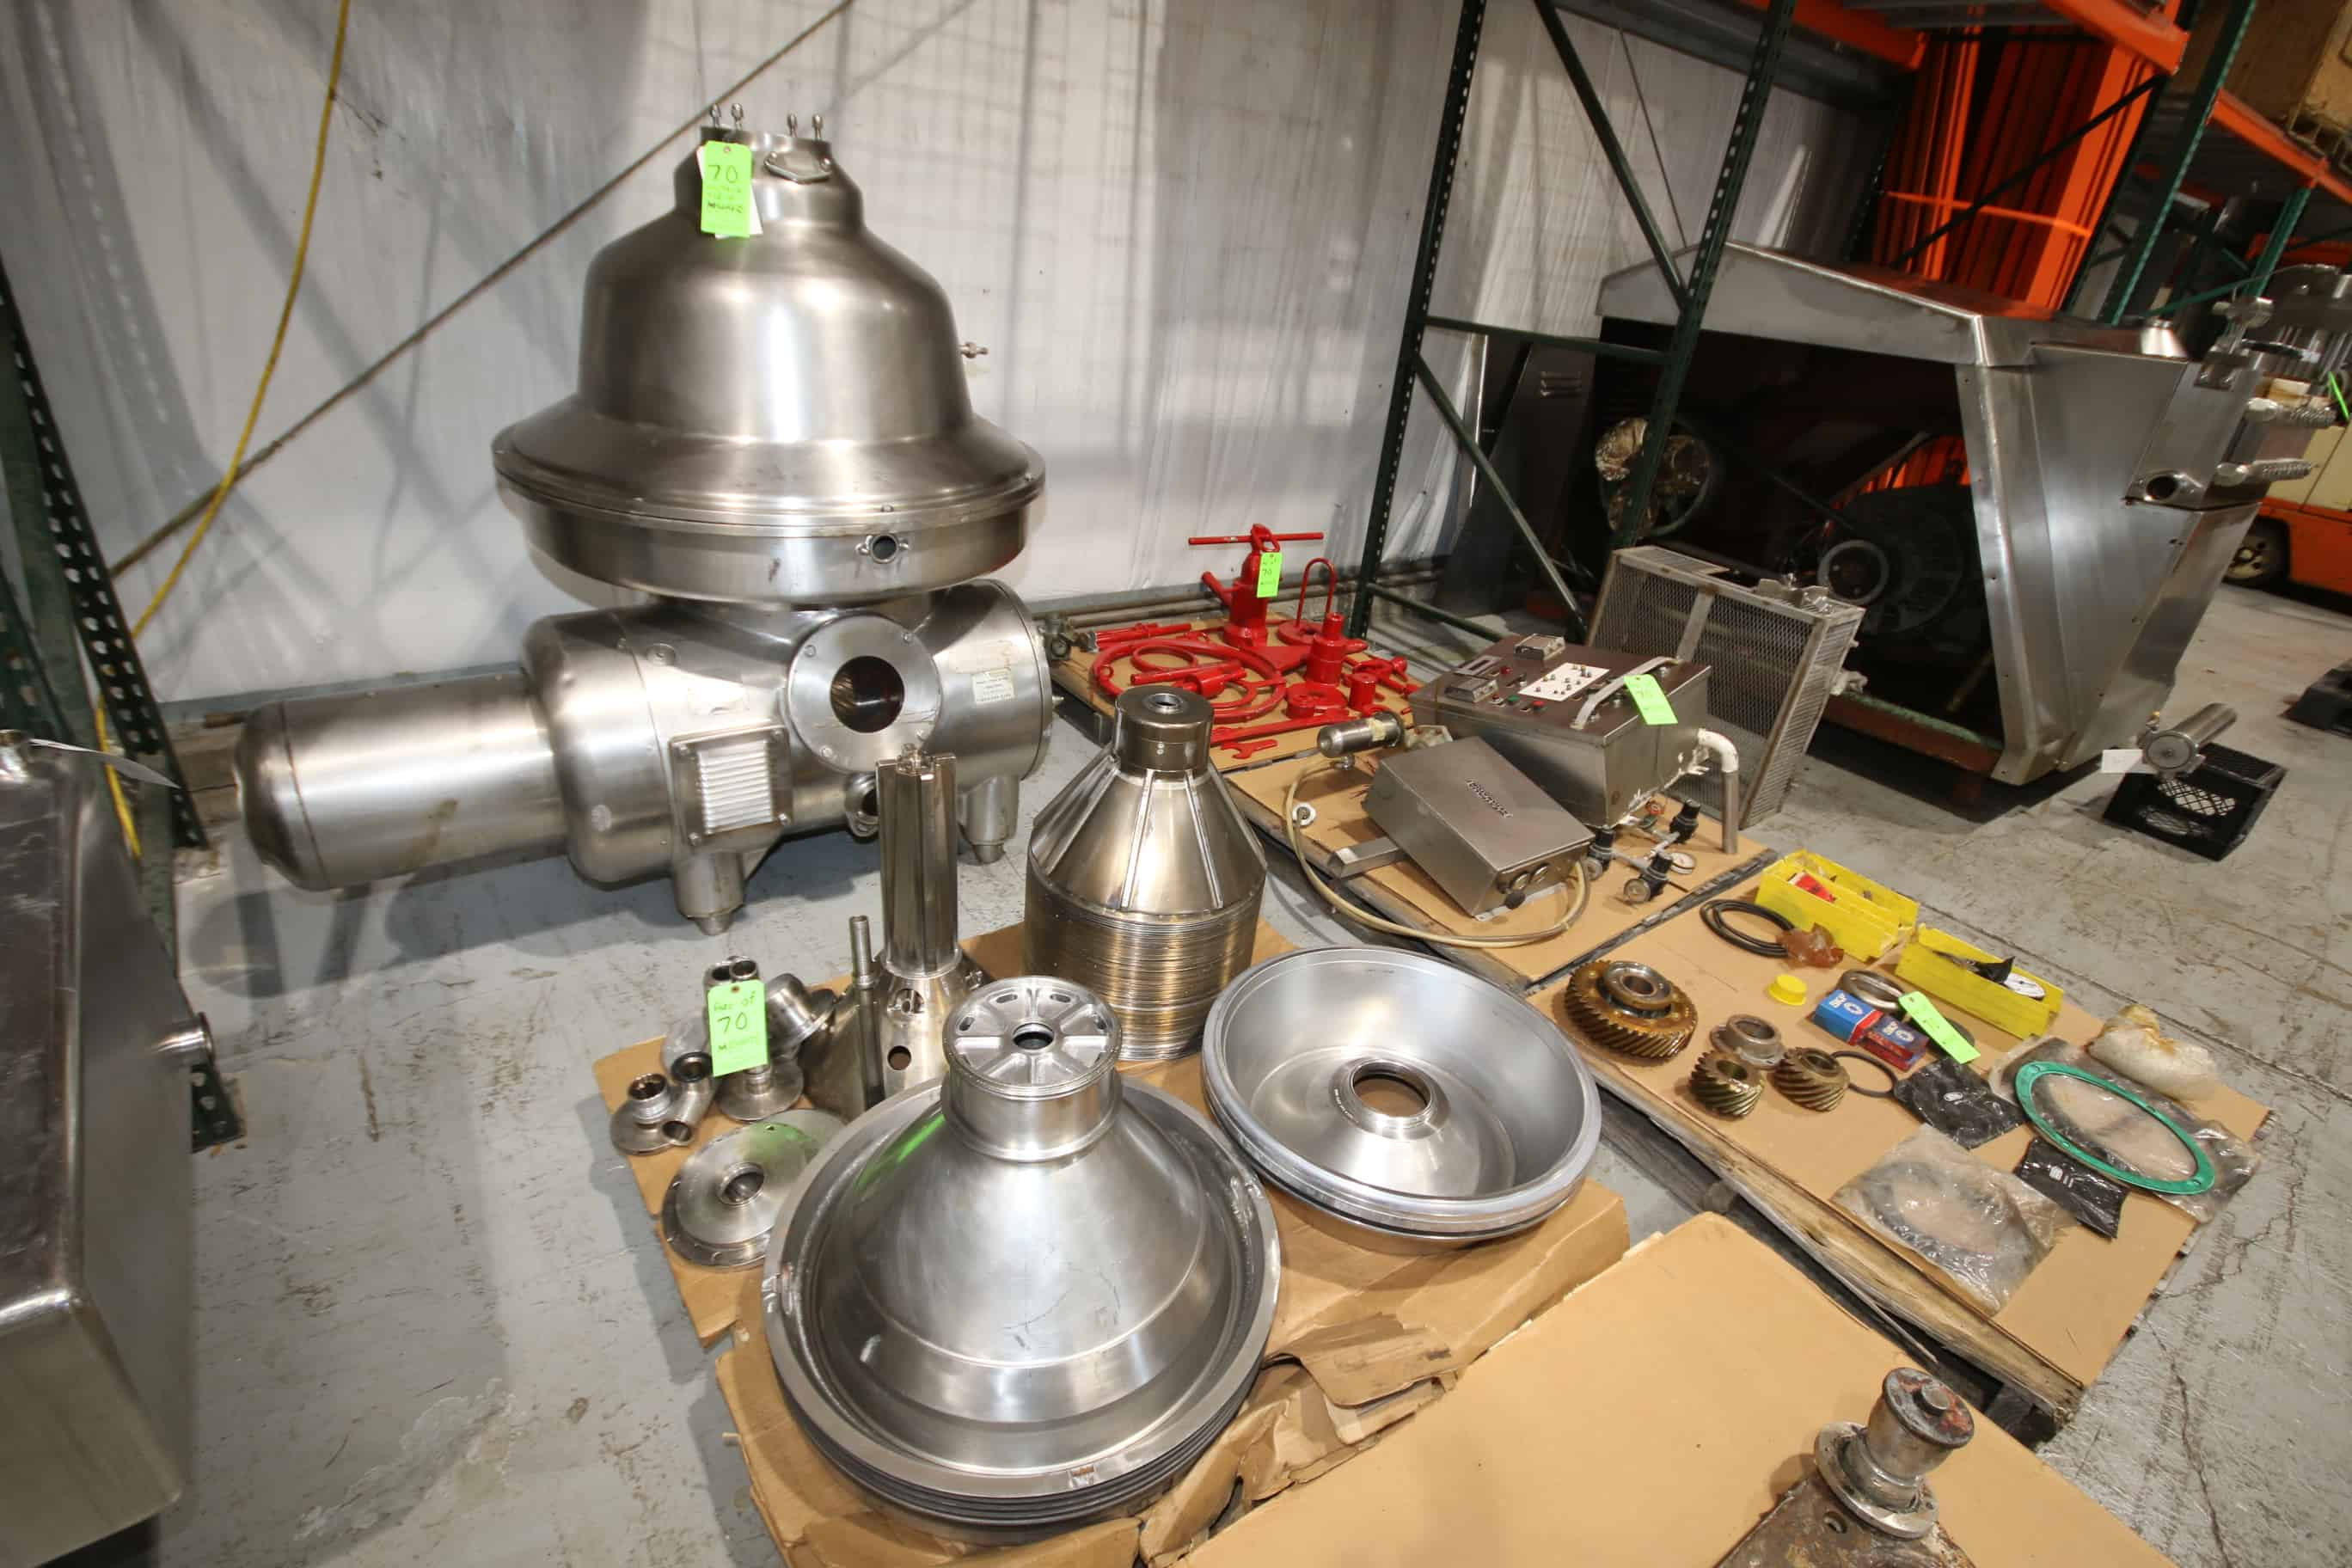 GEA/Westfalia CIP Separator/Centrifuge, Model MSB130-01-076, S/N 1685-105, Bowl Speed 4500 RPM includes Set of Service Tools, Some Spare Parts and (2) Control Panels, M. Davis Group Showroom Auction, Pittsburgh, PA